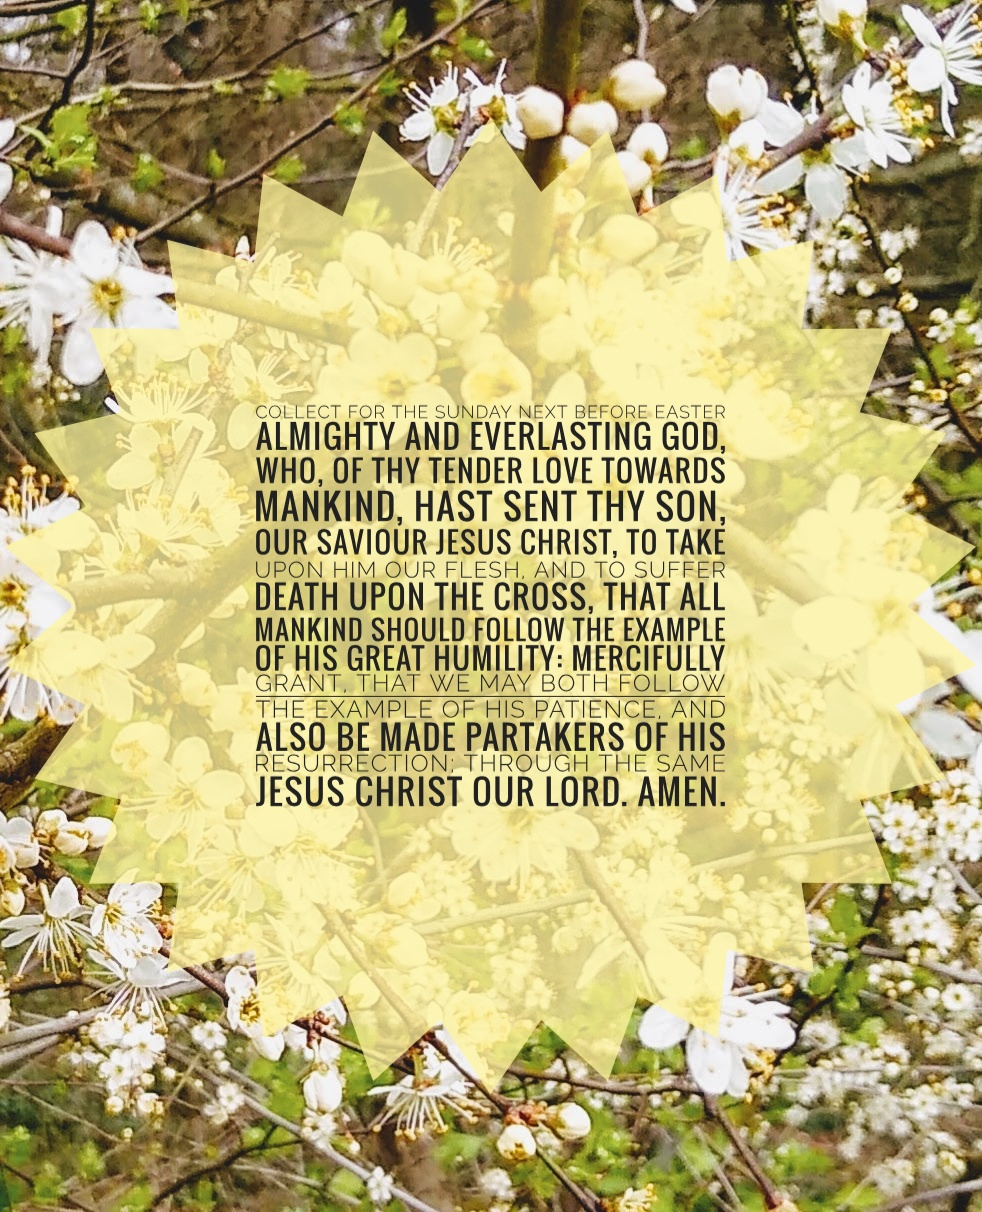 [Black text on yellow starburst, photo of blackthorn blossom behind] ALMIGHTY and everlasting God, who, of thy tender love towards mankind, hast sent thy Son, our Saviour Jesus Christ, to take upon him our flesh, and to suffer death upon the cross, that all mankind should follow the example of his great humility: Mercifully grant, that we may both follow the example of his patience, and also be made partakers of his resurrection; through the same Jesus Christ our Lord. Amen.